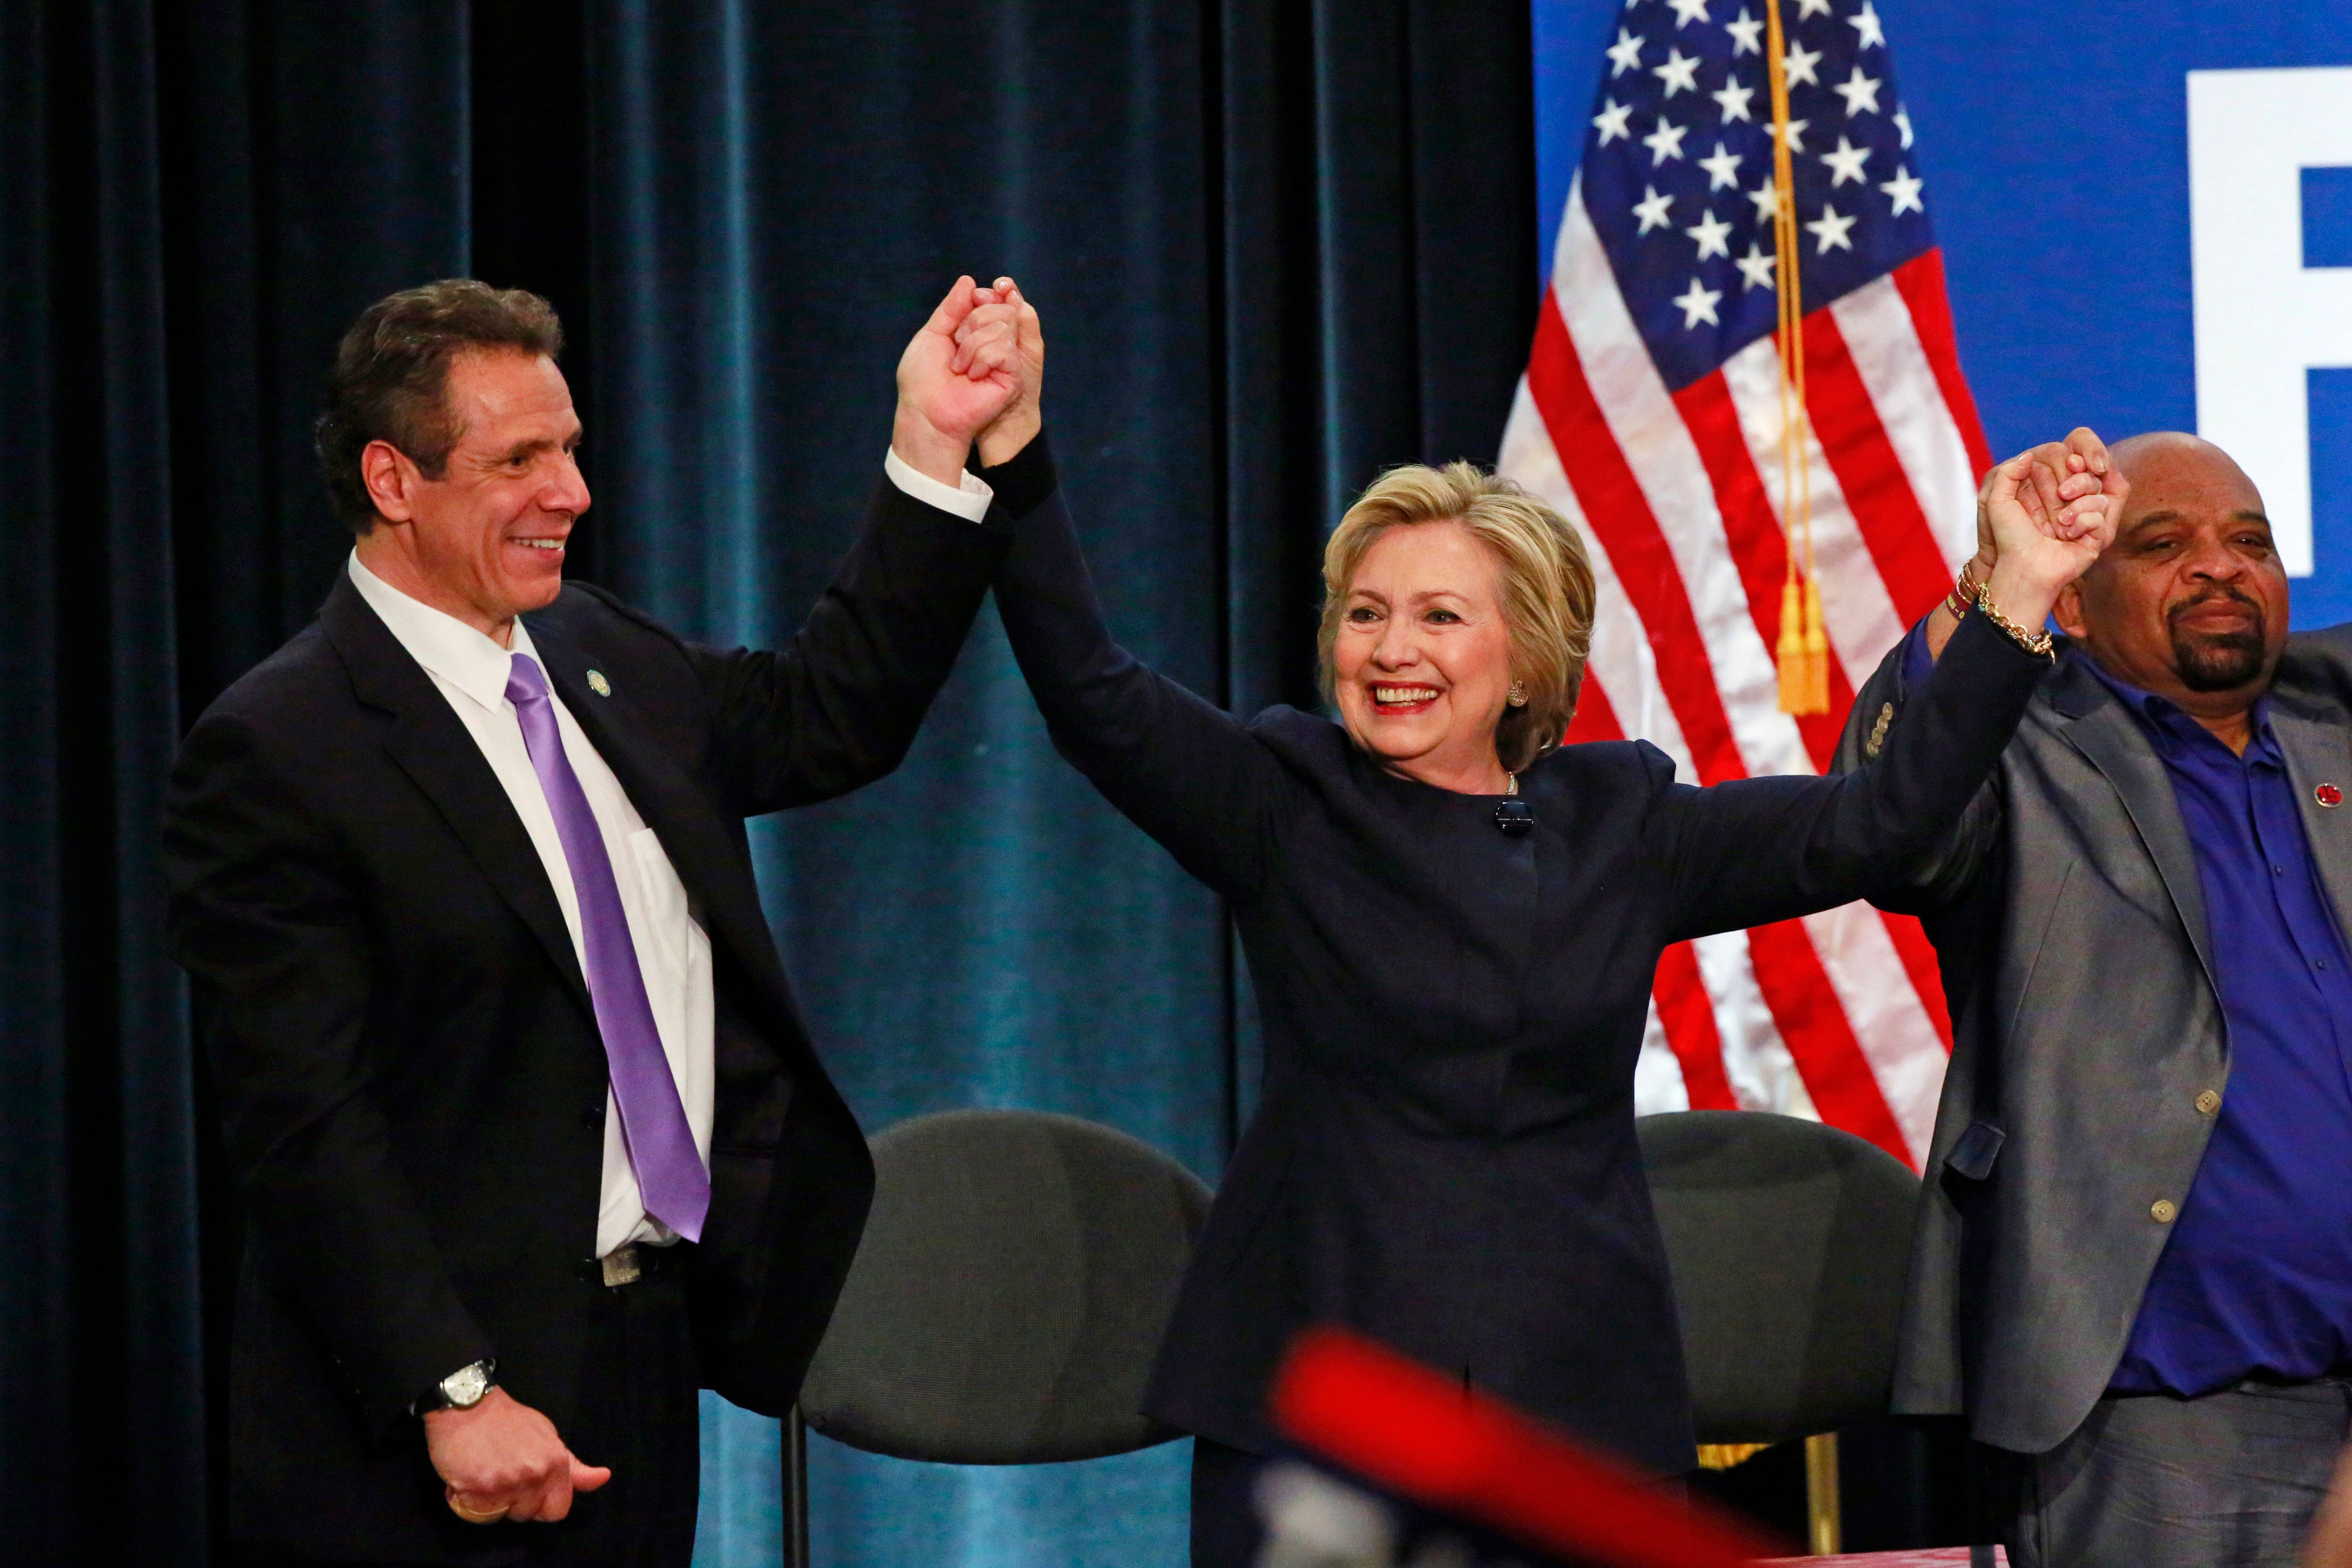 U.S. Democratic presidential candidate Hillary Clinton and New York Governor Andrew Cuomo (L) stand on stage after addressing at a rally to celebrate the state of New York passing into law a $15 minimum wage in New York April 4, 2016.  REUTERS/Lucas Jackson